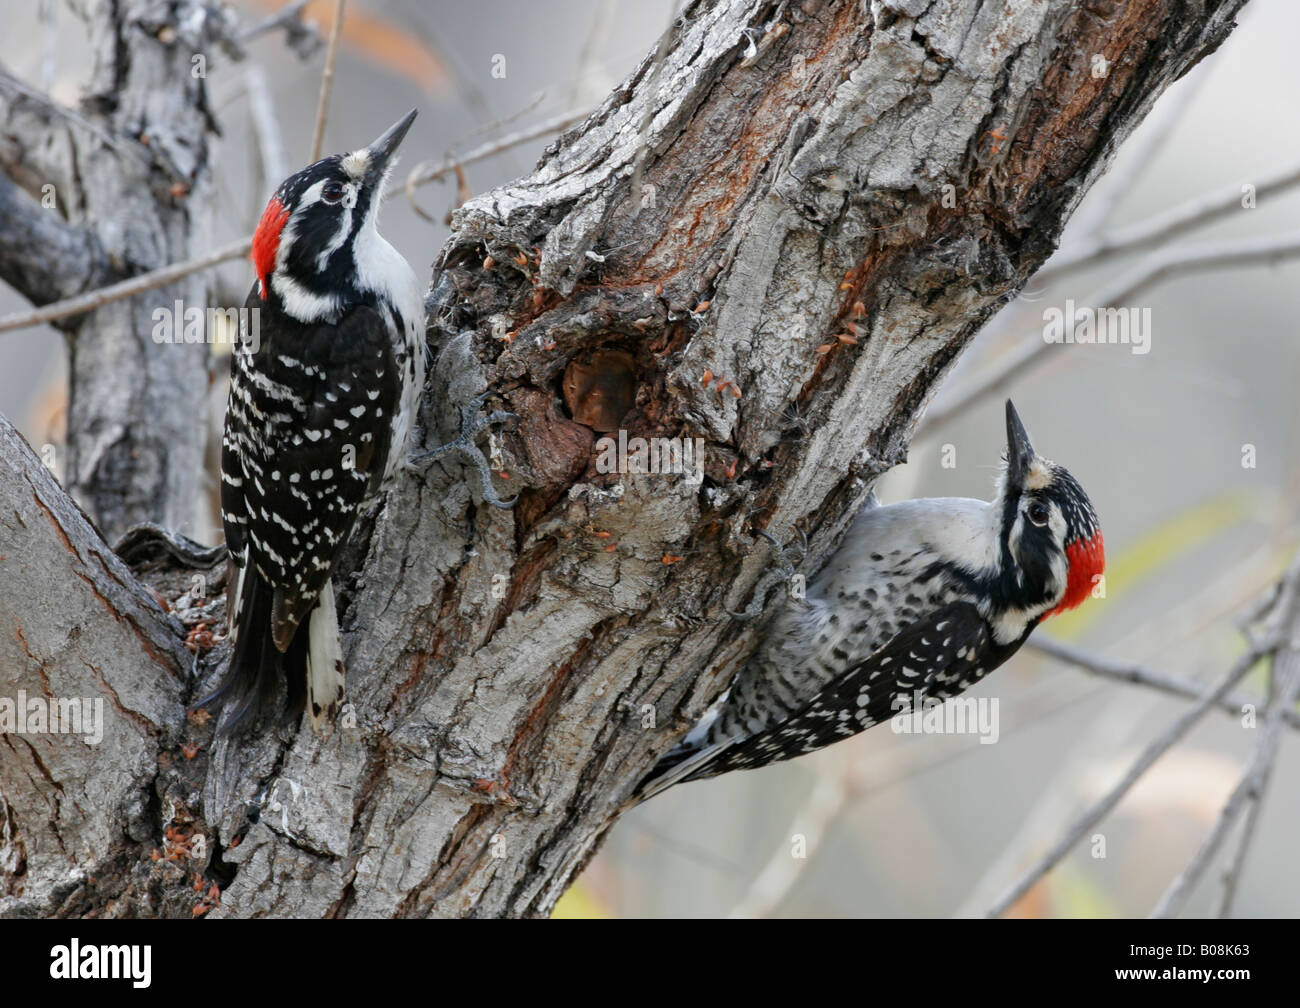 Two Nuttall's Woodpeckers regard each other from opposite sides of the tree in San Diego, California, USA - Stock Image